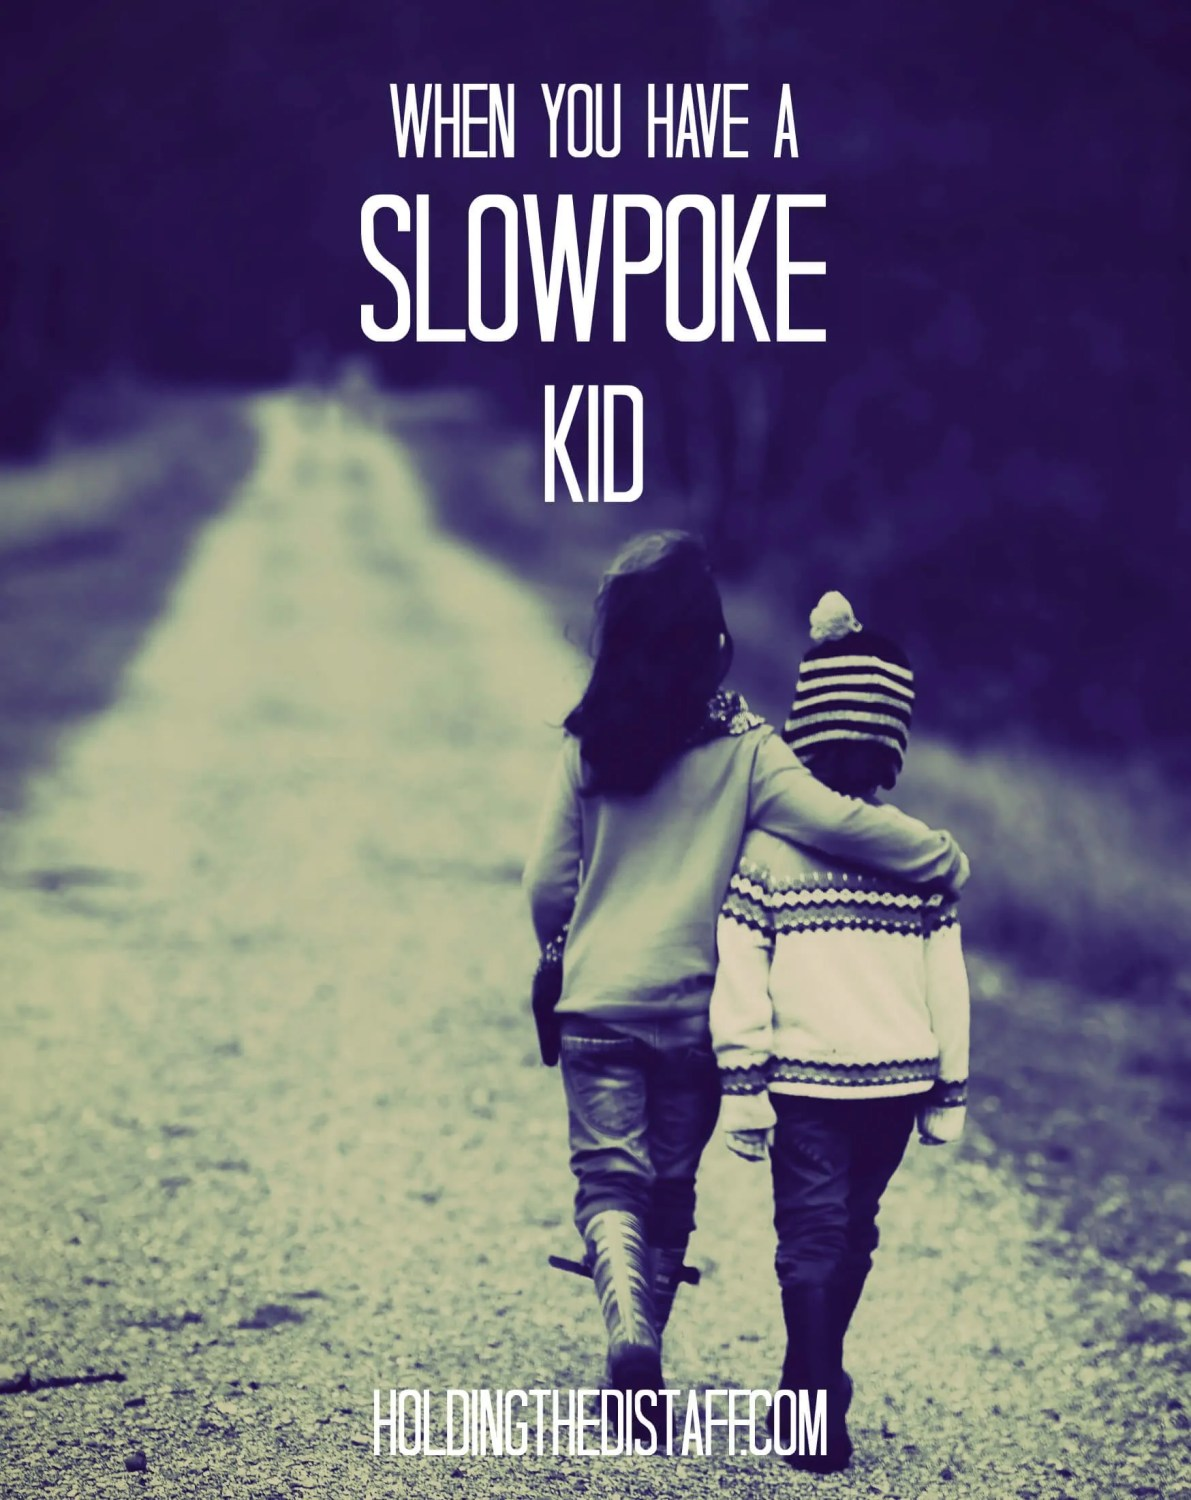 """When You Have a Slowpoke Kid:I have what you might call a """"slowpoke"""" child. When it comes to efficiency, it turns out I may have more to learn from him than he has to learn from me."""